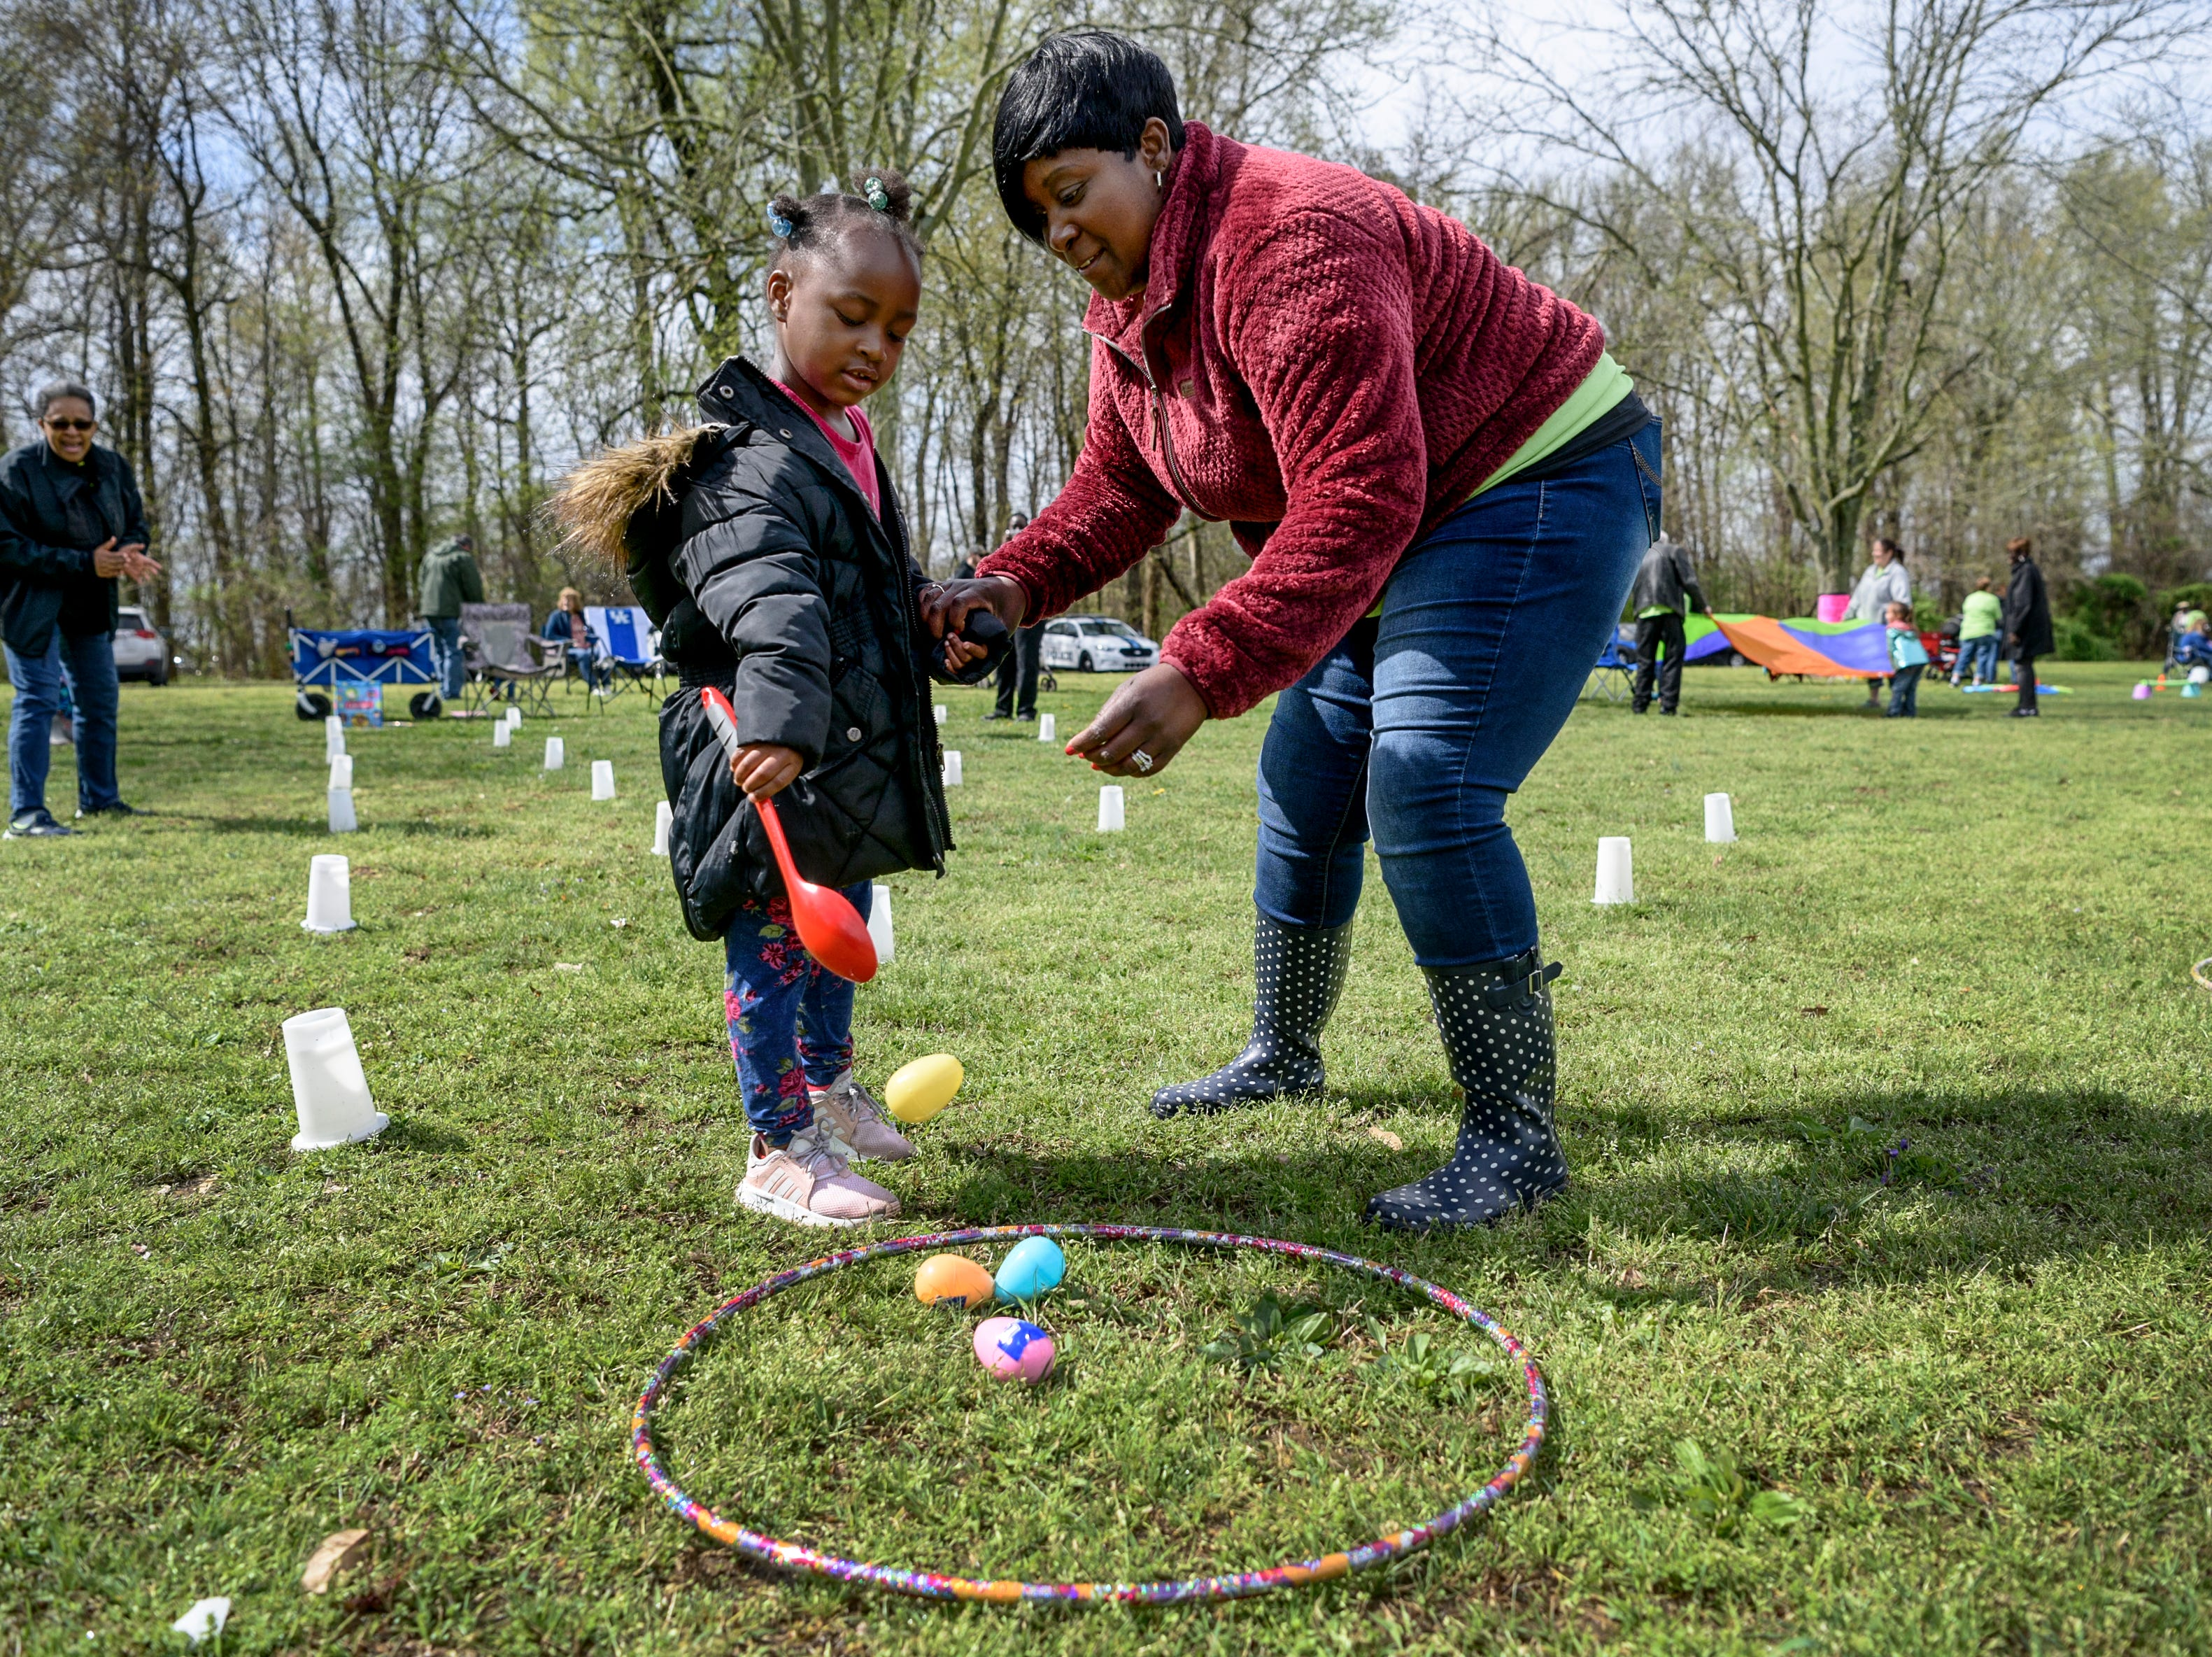 Amira Clemmons, 4, gets help from Jamie Douglas at the egg run station during the annual Family Fun day for the Community Action Program of Evansville & Vanderburgh County, Inc. (CAPE) Head Start and Early Head Start Early Childhood Education programs at Wesselman Park in Evansville, Ind., Friday, April 12, 2019.